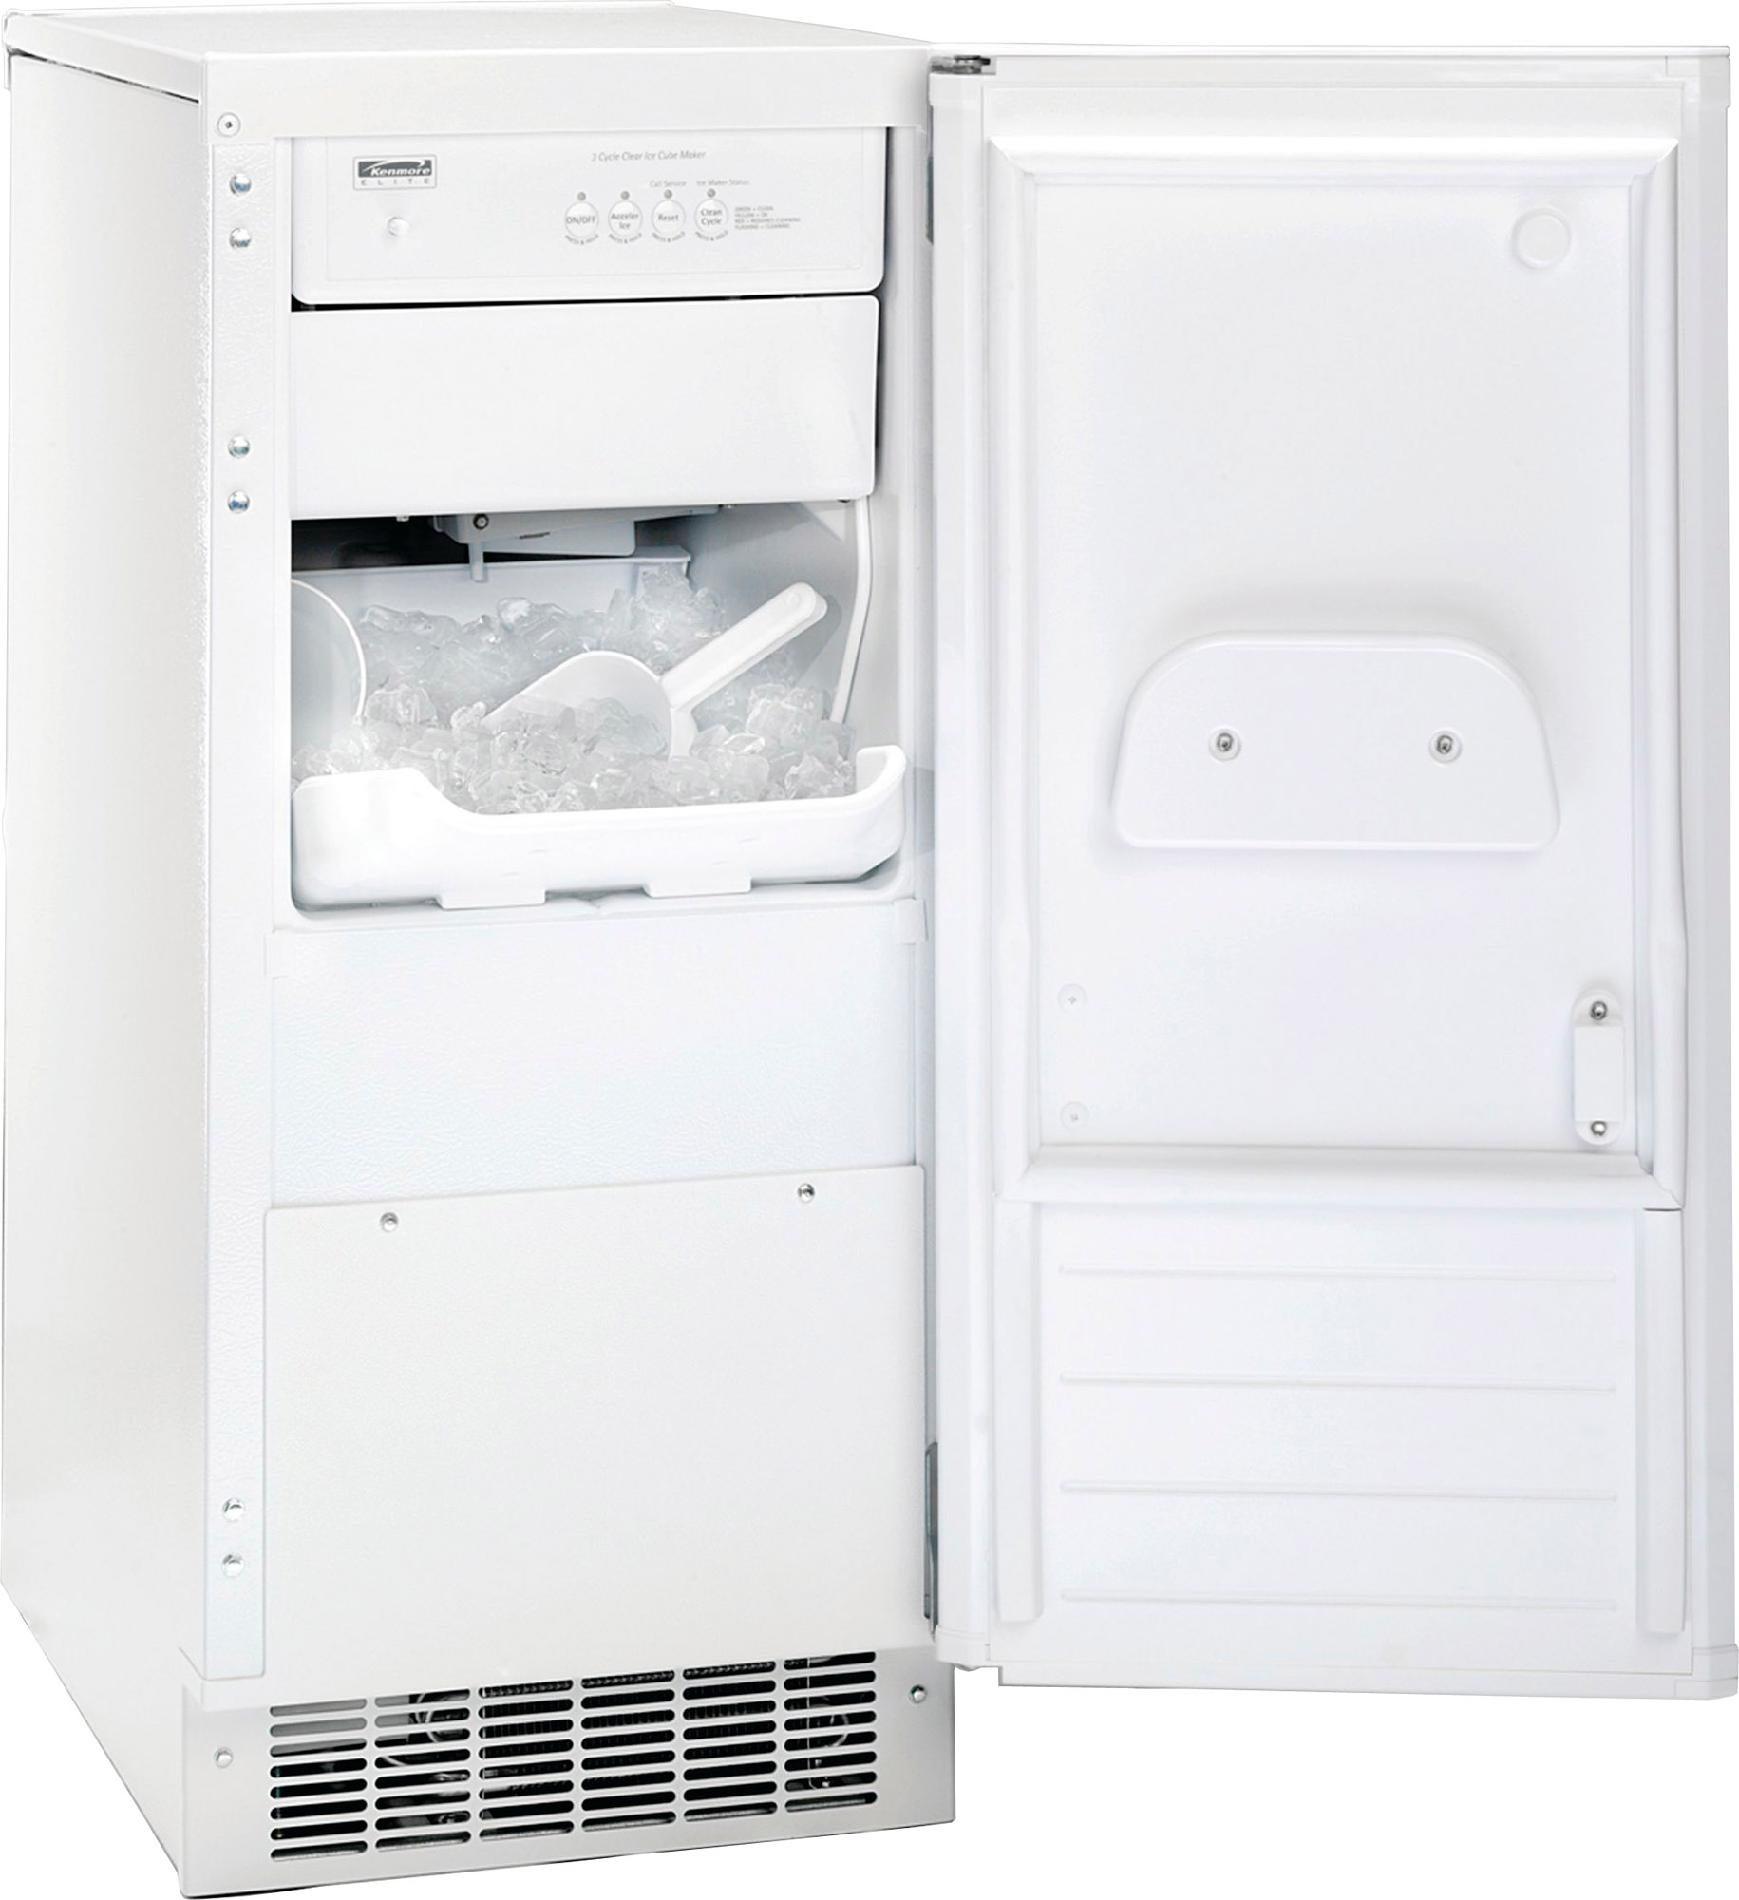 Kenmore Built-In 51 lb. Capacity Ice Maker Freezer - White